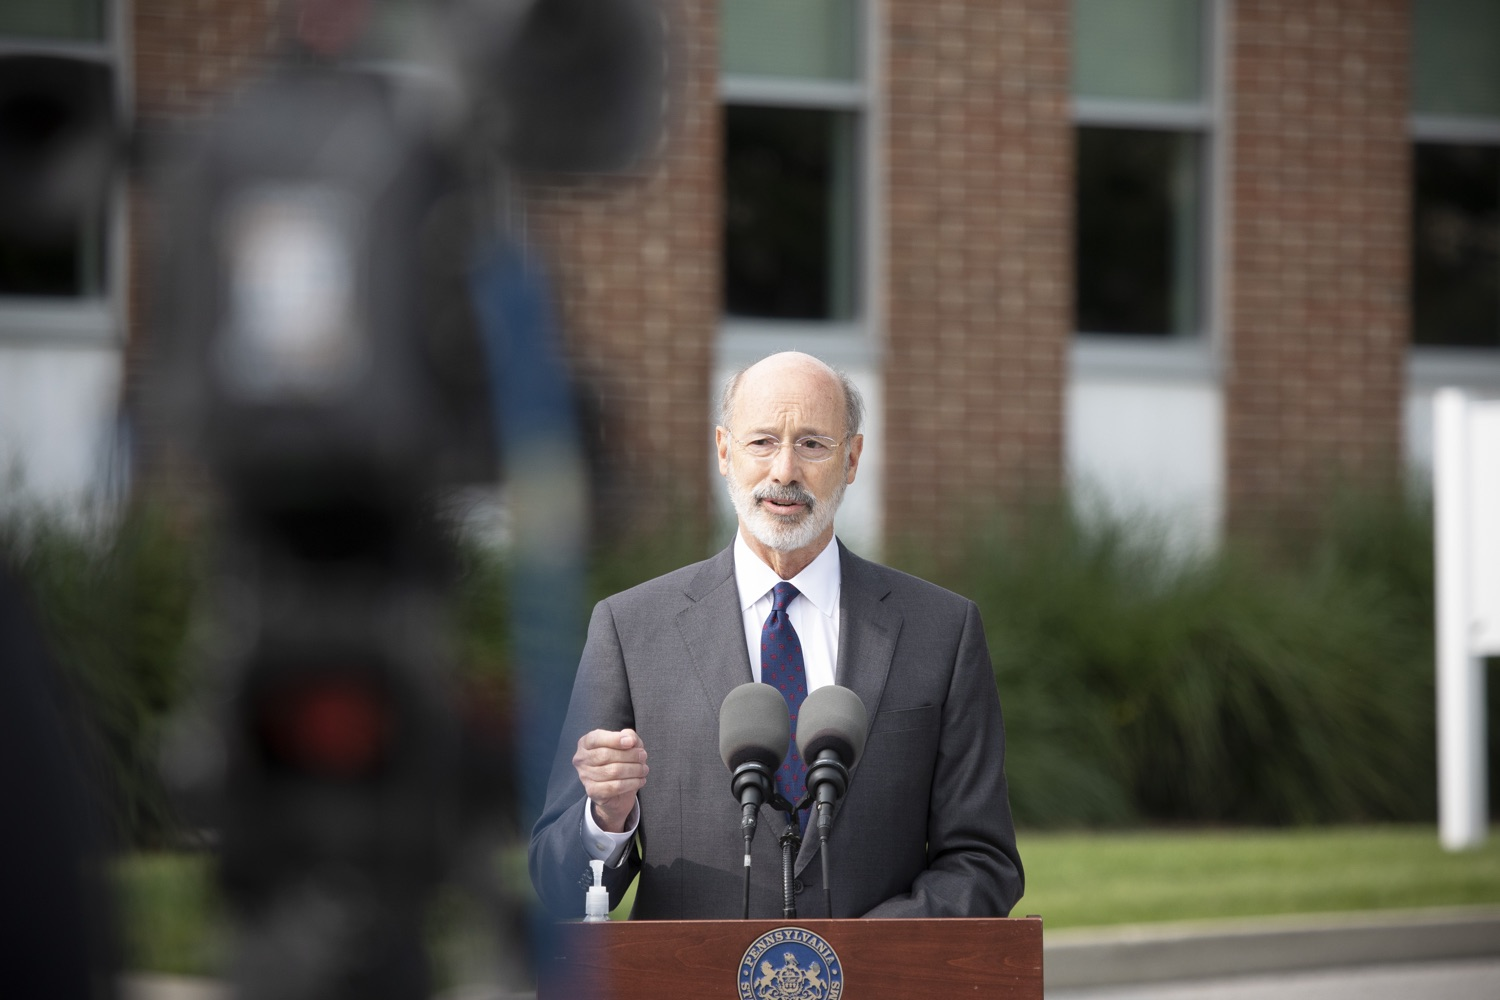 "<a href=""https://filesource.wostreaming.net/commonwealthofpa/photo/18259_gov_electionReform_dz_008.jpg"" target=""_blank"">⇣ Download Photo<br></a>Pennsylvania Governor Tom Wolf speaking to the press.  With only seven weeks left before the Nov. 3 election, Governor Tom Wolf is urging immediate legislative action to ensure voters receive their mail-in ballots early and give counties more time to process and count ballots before election day. The governor also reassured Pennsylvanians that in-person voting is safe, and all eligible votes will be counted. SEPTEMBER 14, 2020 - YORK, PA."